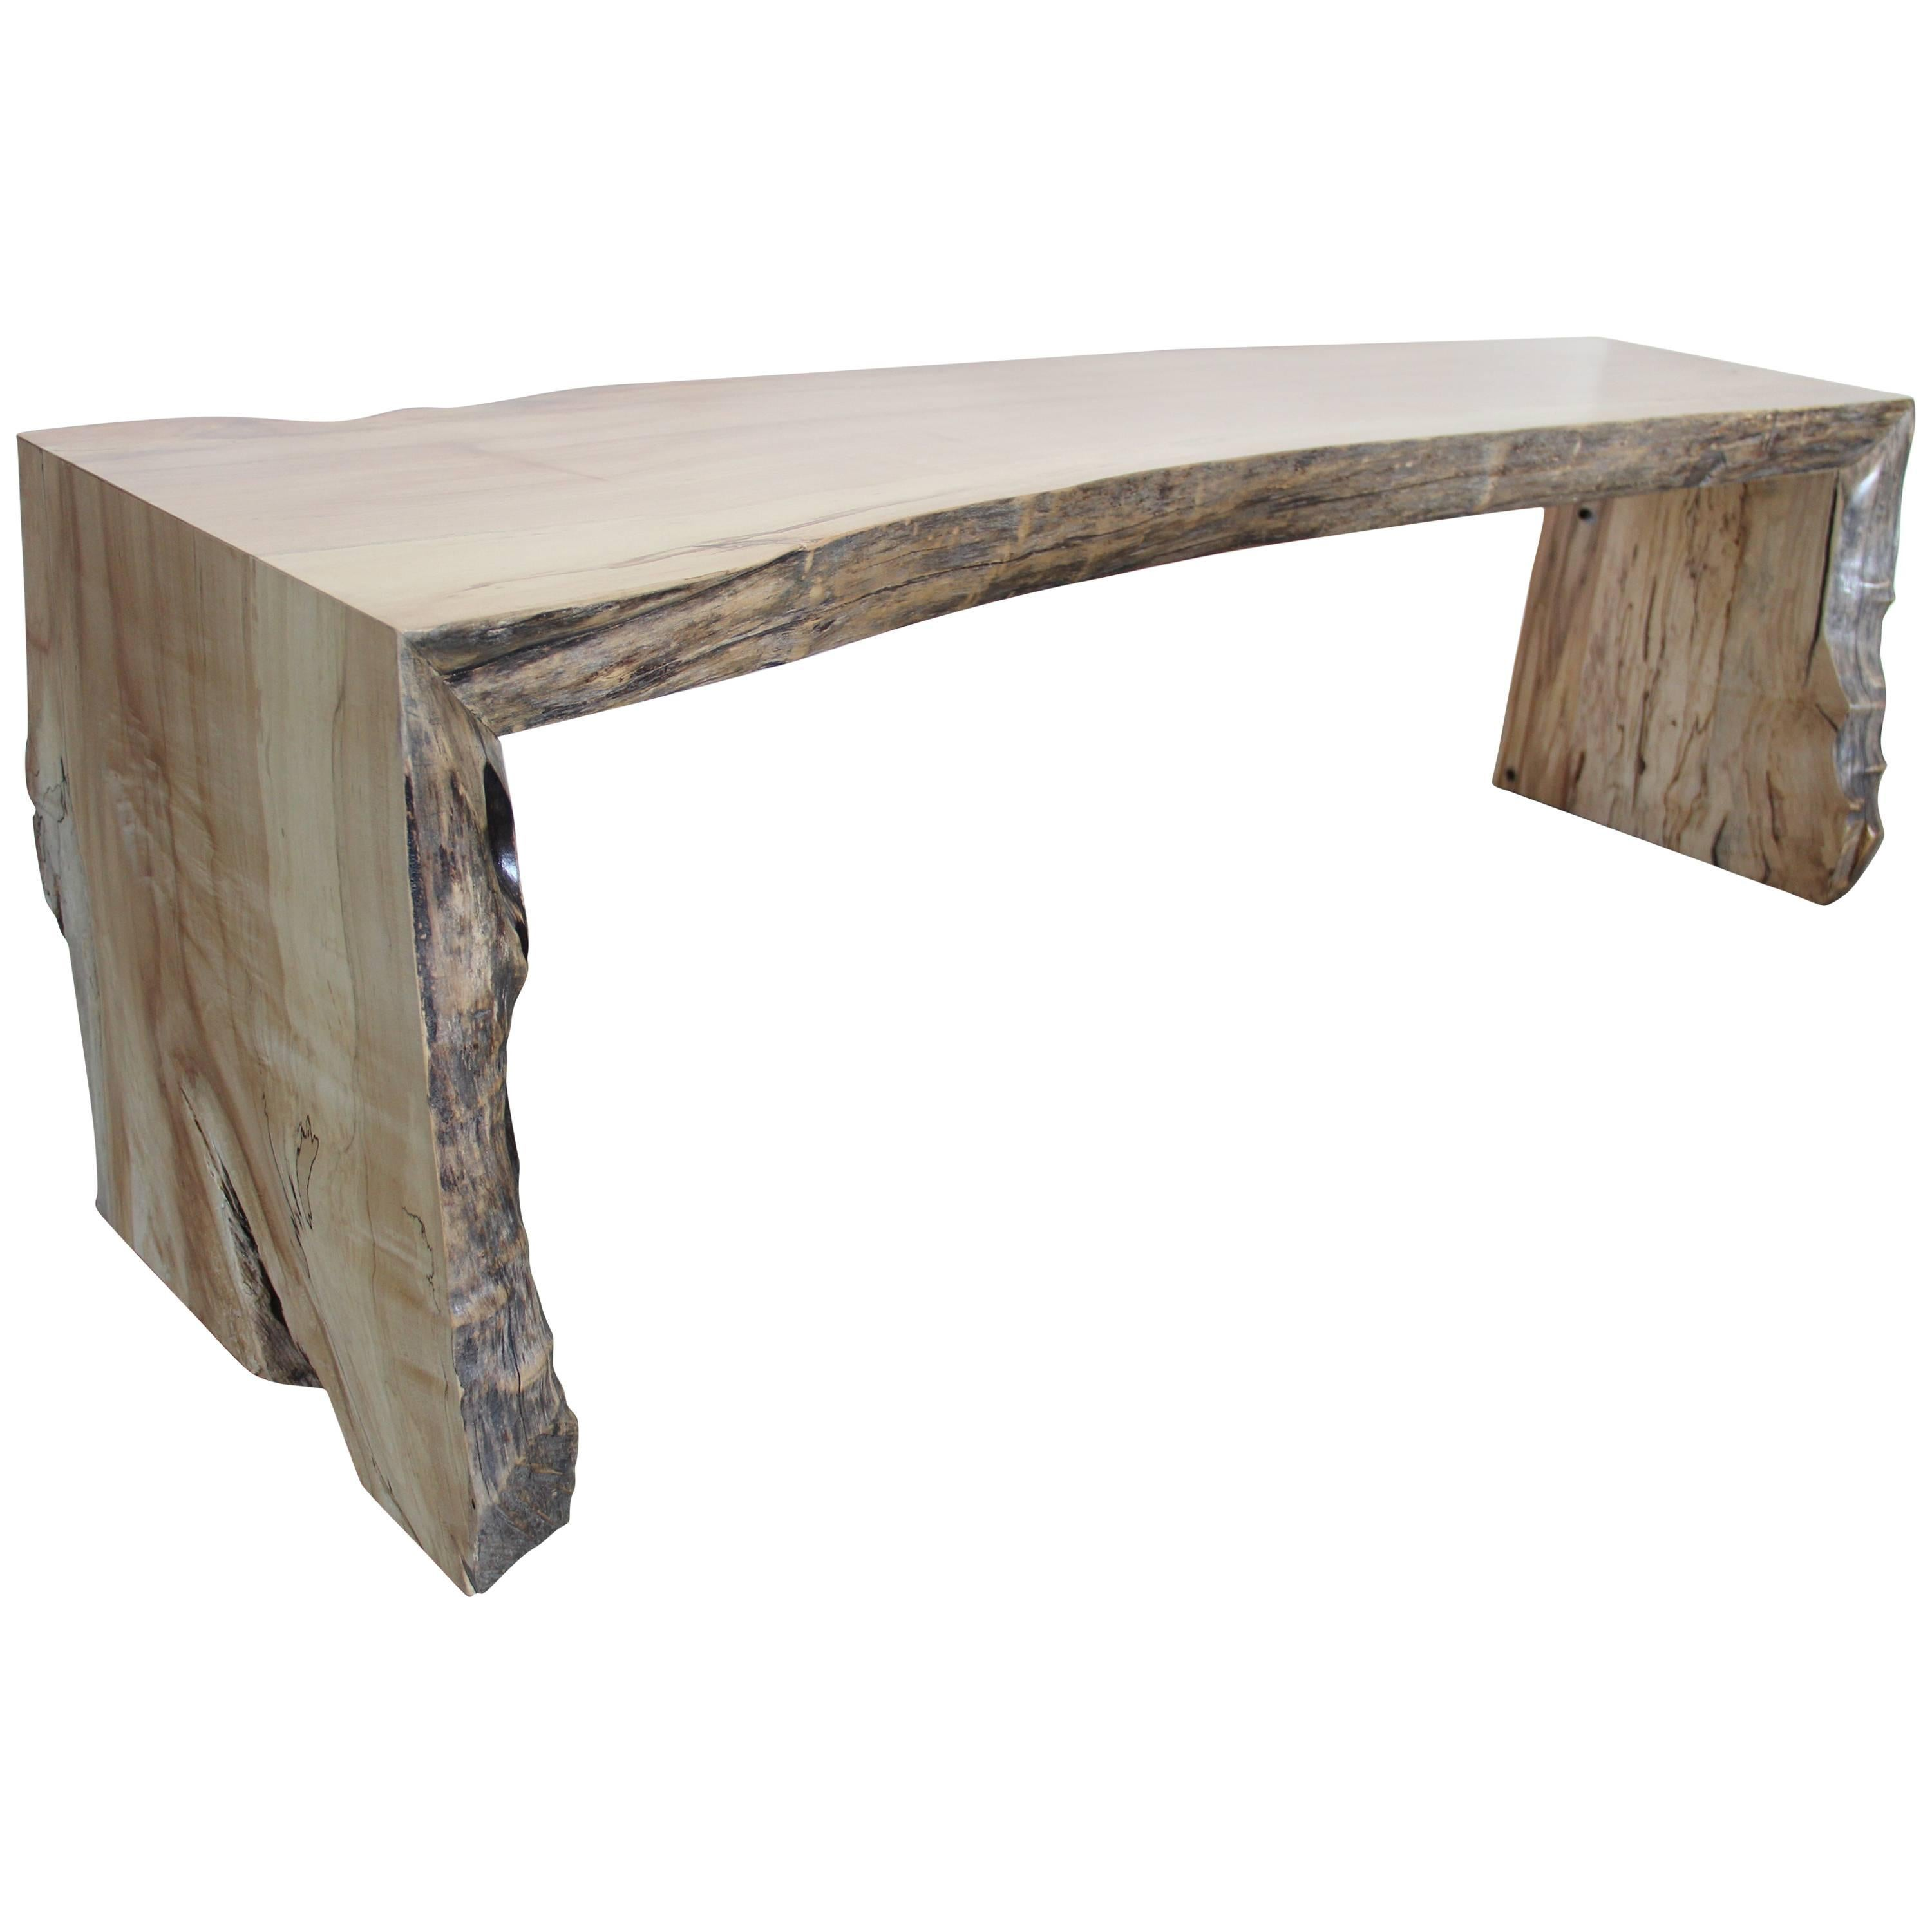 Cocoon Chair Or Organic Modern Reclaimed Wood Lounge Chair For Sale At  1stdibs